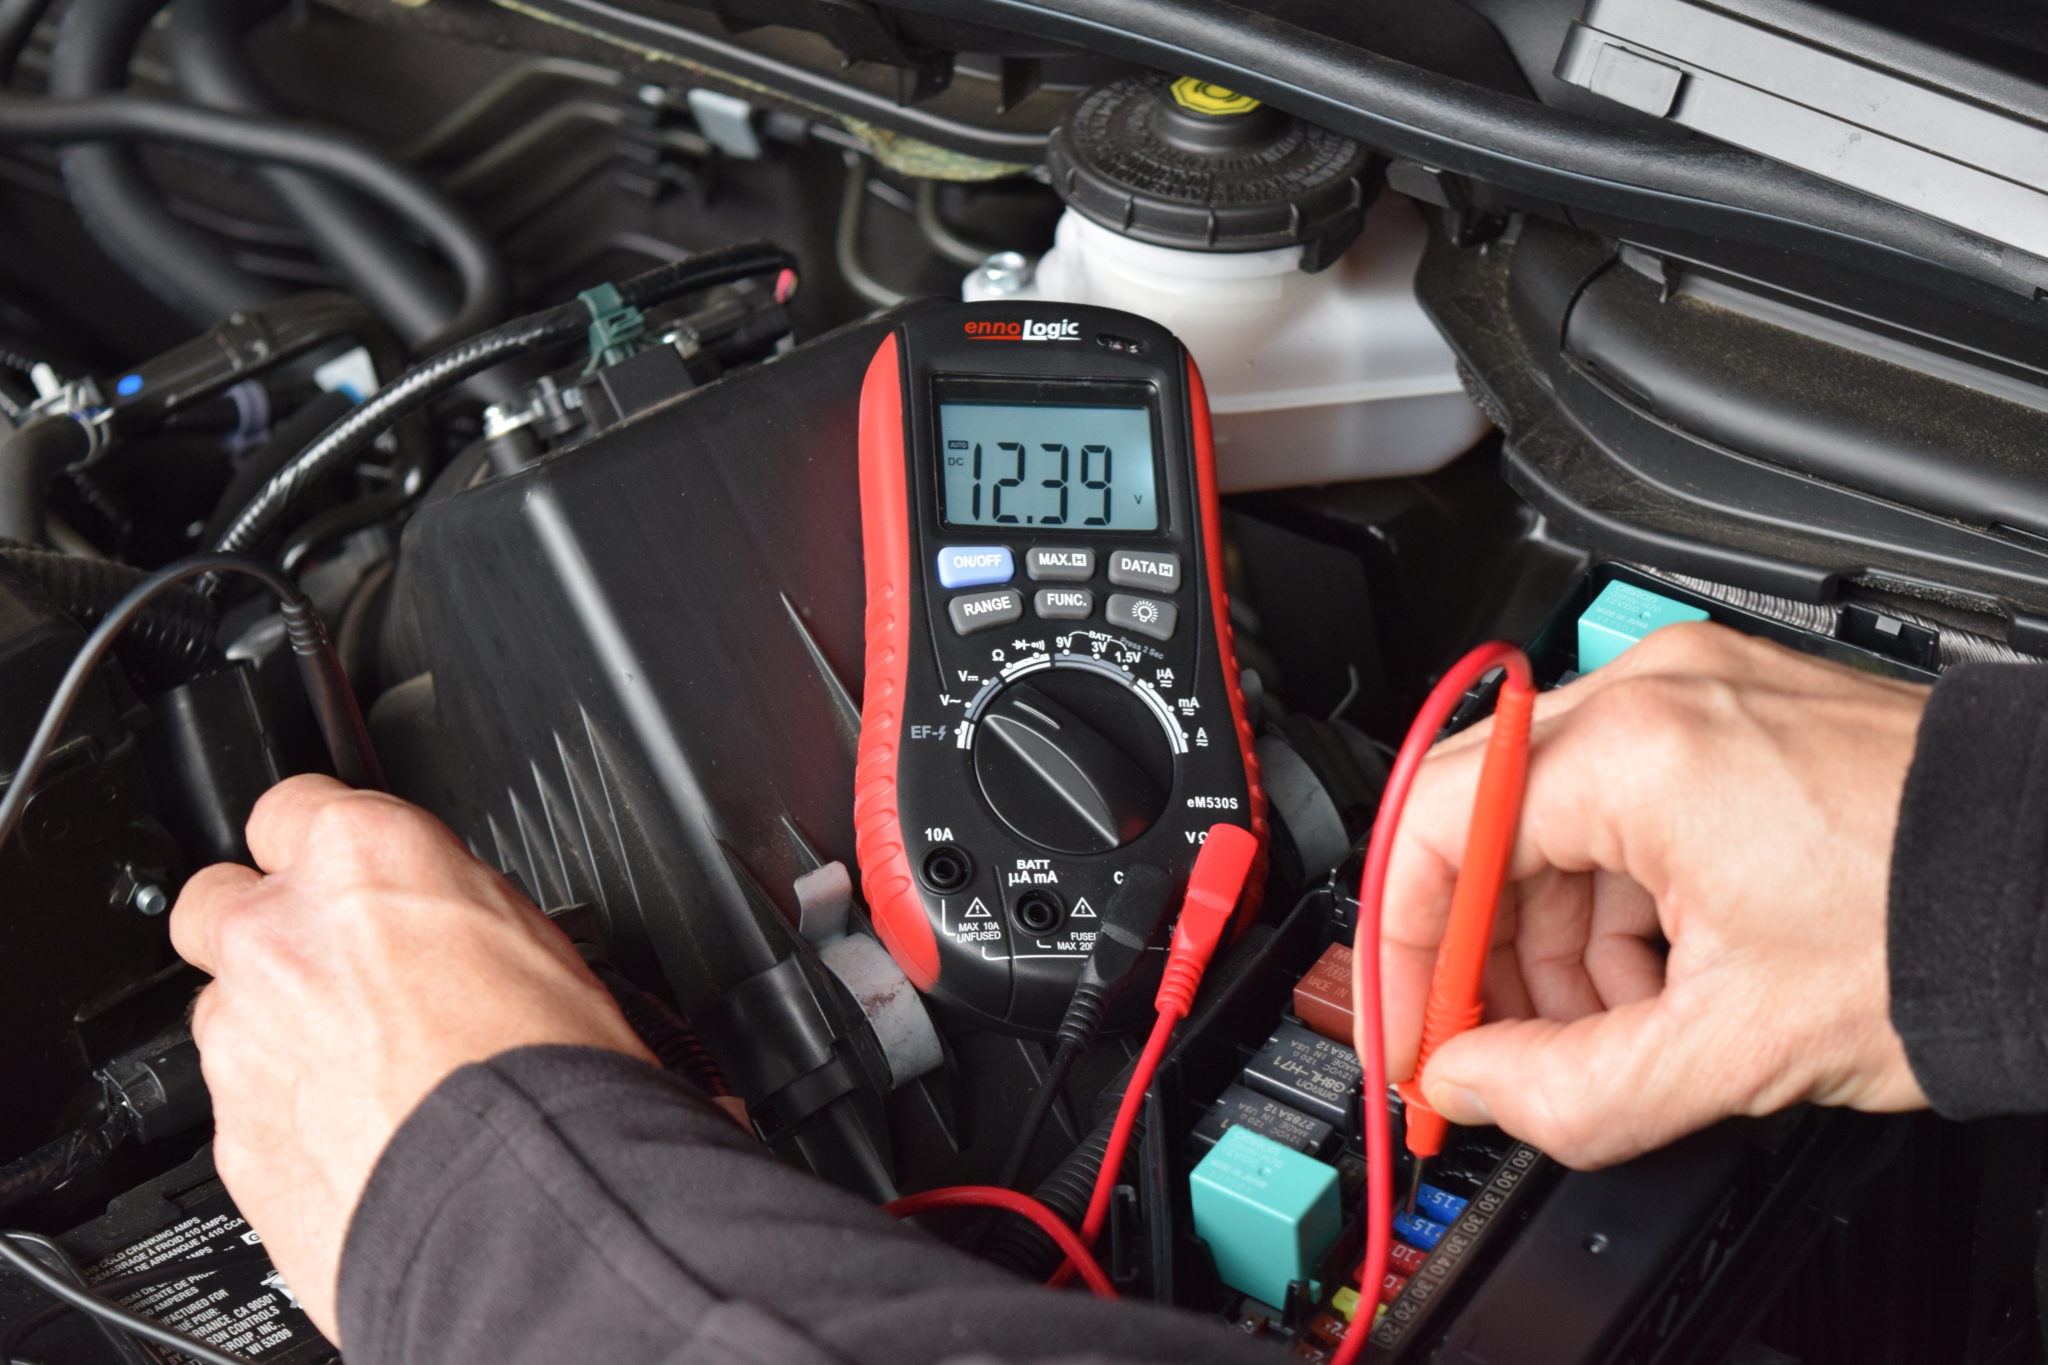 Testing car fuses with multimeter ennoLogic eM530S